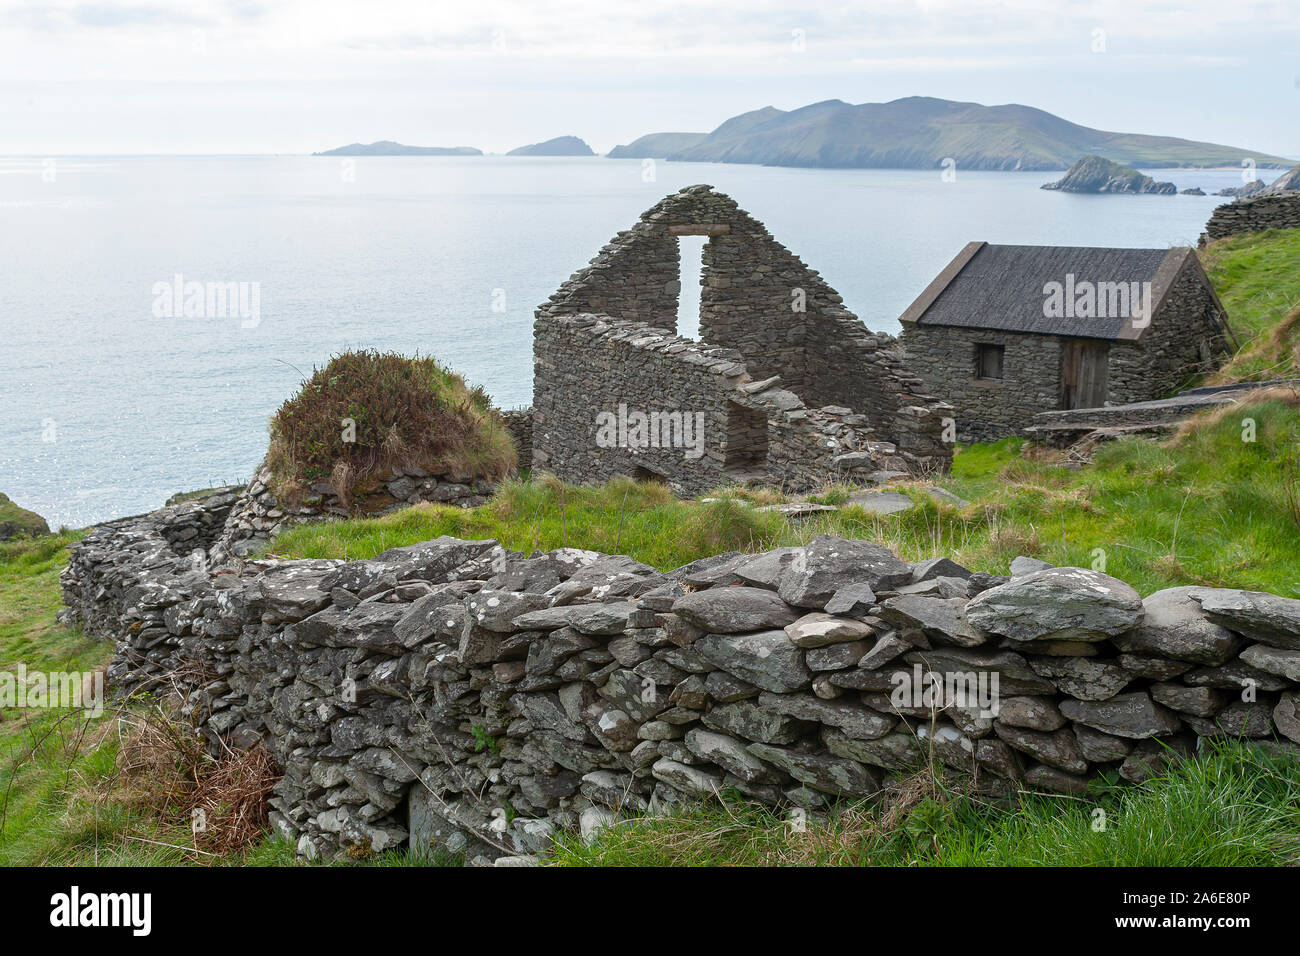 Ruins of a house near Slea Head and part of the Blasket Islands, the most Western point of Europe, Dingle Peninsula, Republic of Ireland. Stock Photo